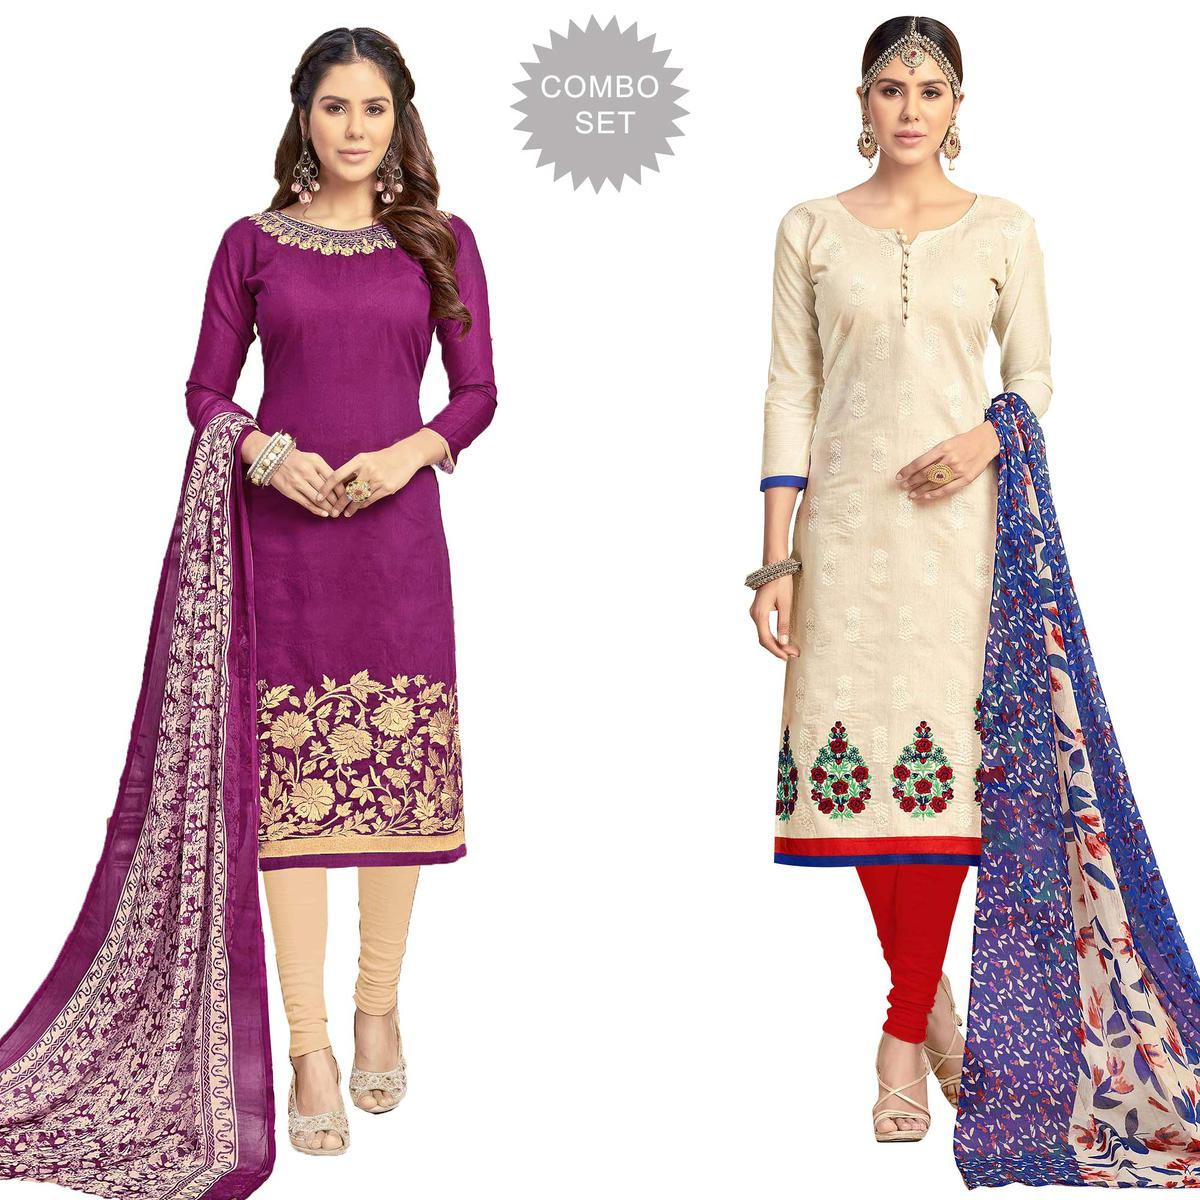 Blooming Partywear Embroidered Chanderi Silk Suit - Pack of 2